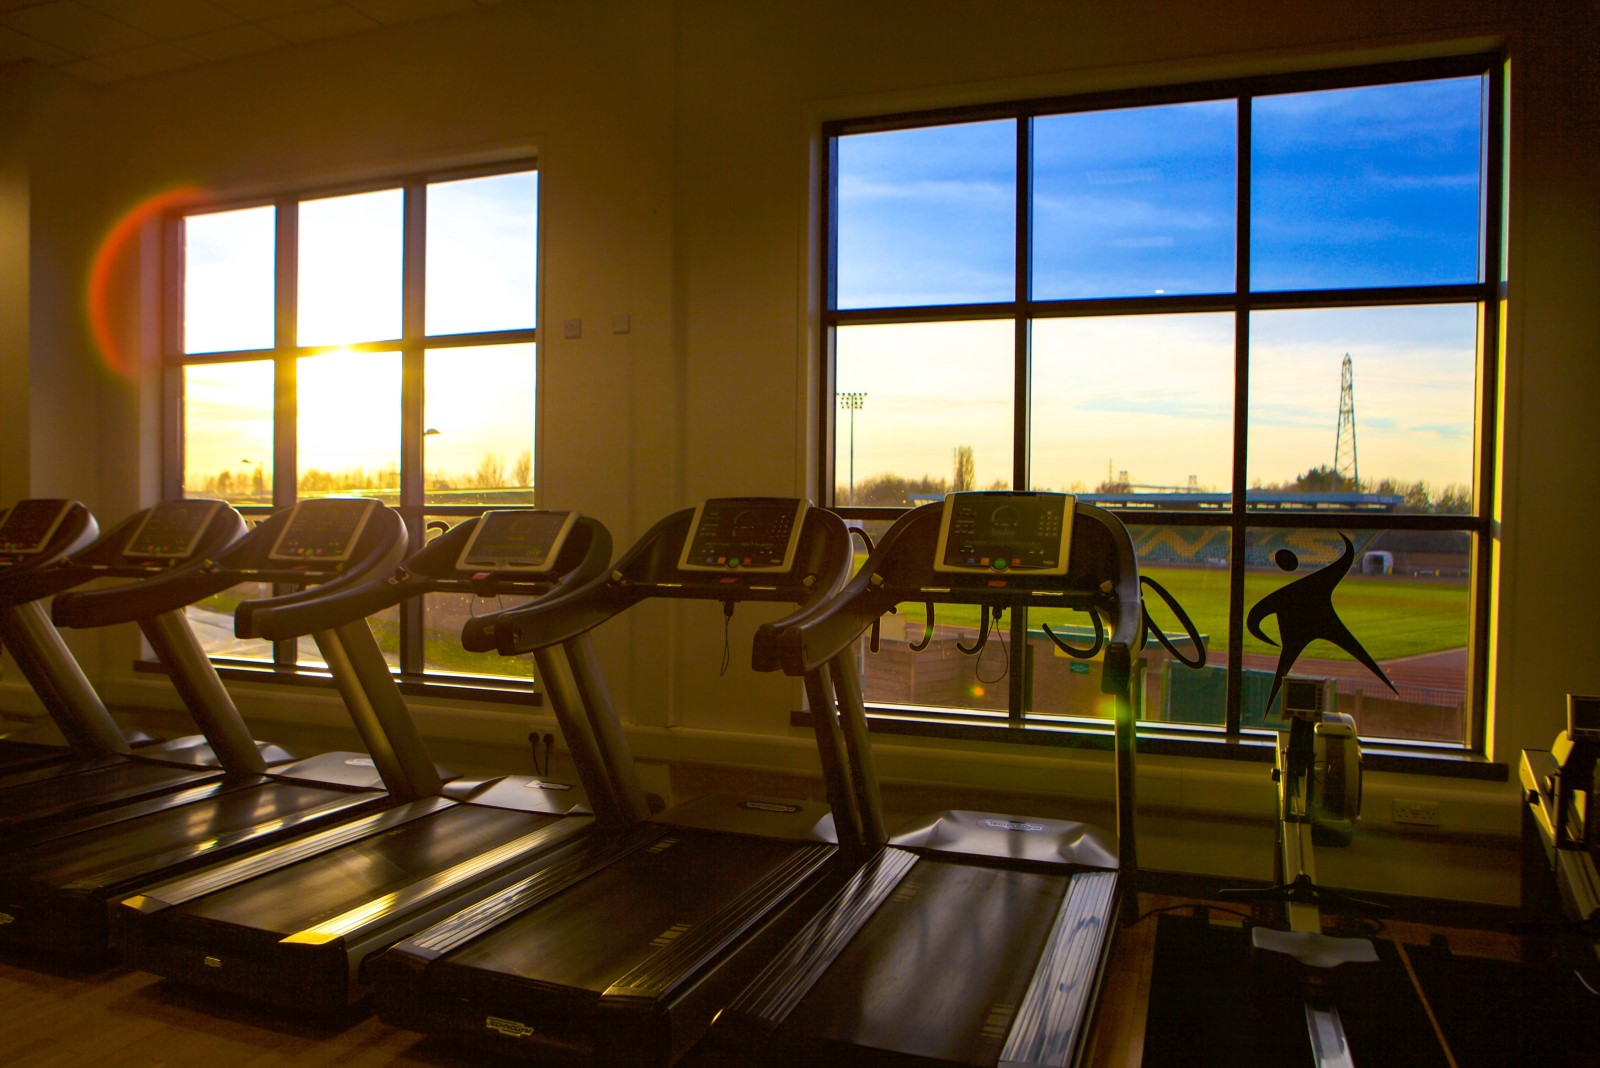 Line of tradmills with sun setting through gym window.jpg